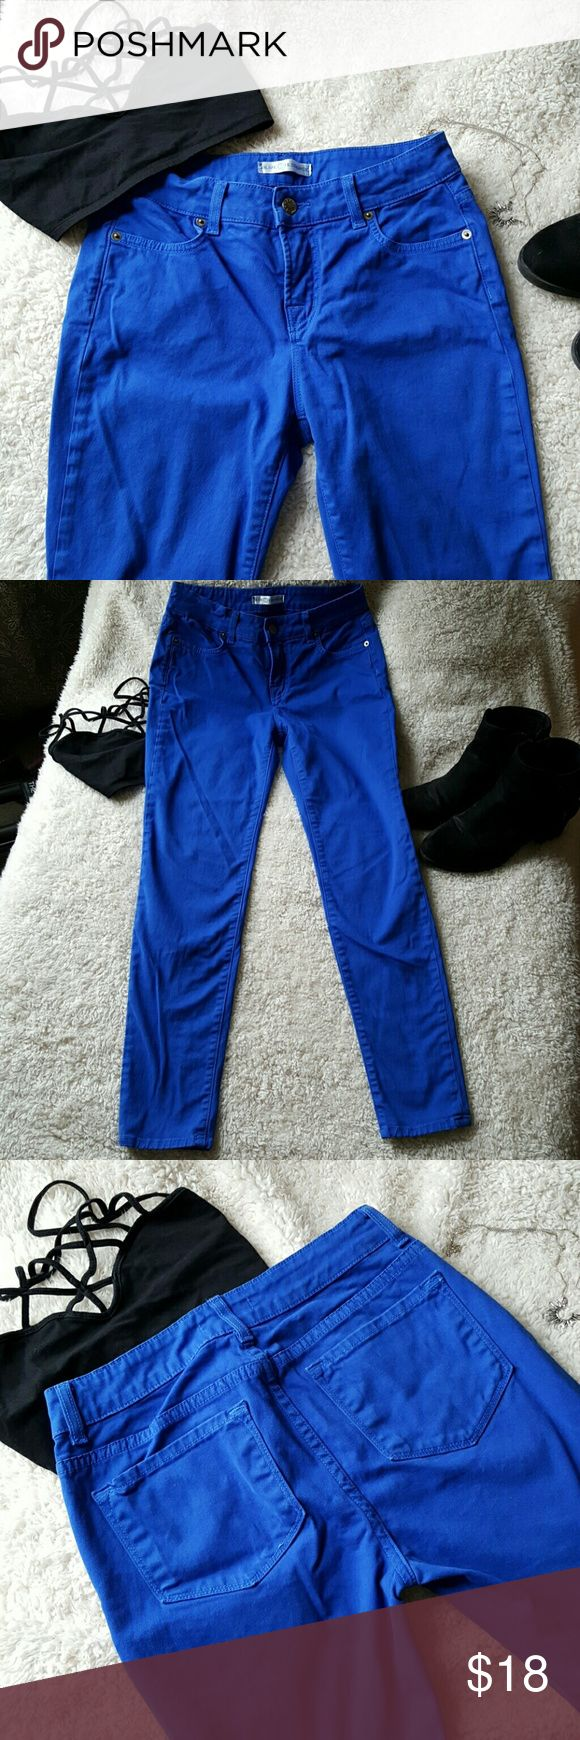 Bright blue denim twill pants These skinny blue pants are buttery soft. They are like new. 99 % cotton and 1 l% spandex. 27 inch inseam. Blue Essence Pants Skinny